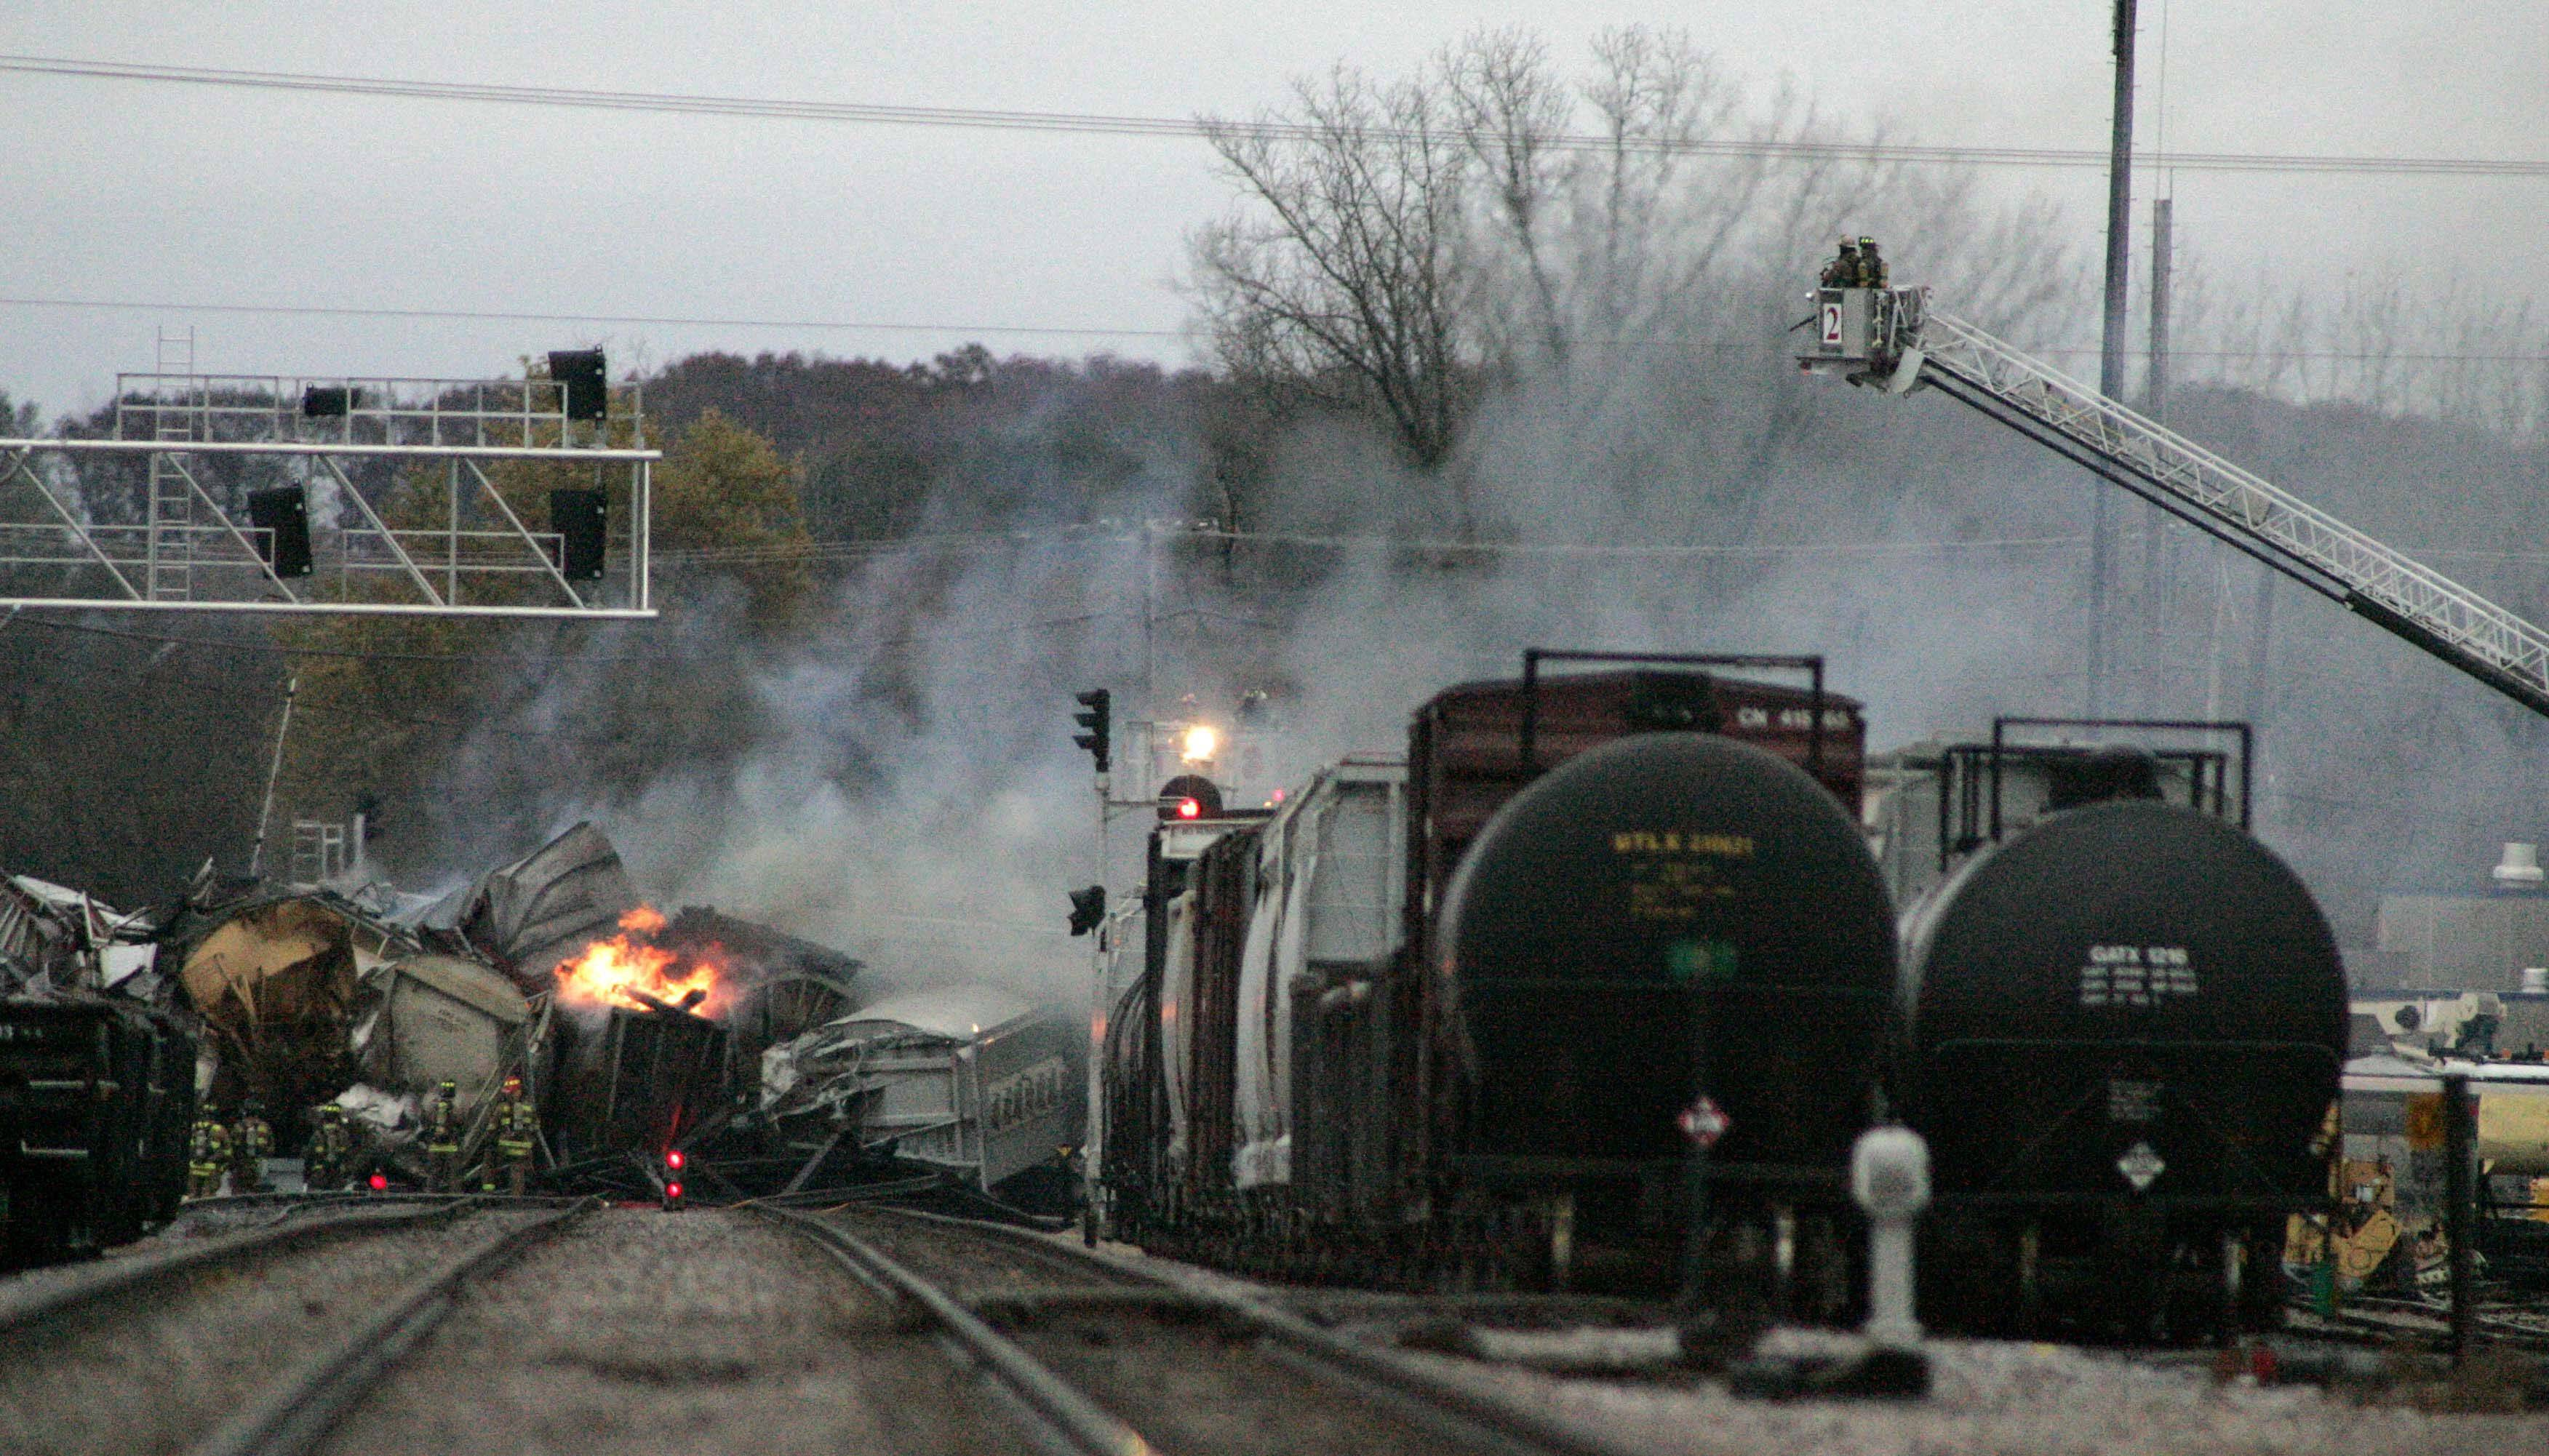 Images: Freight train derailment in Elgin